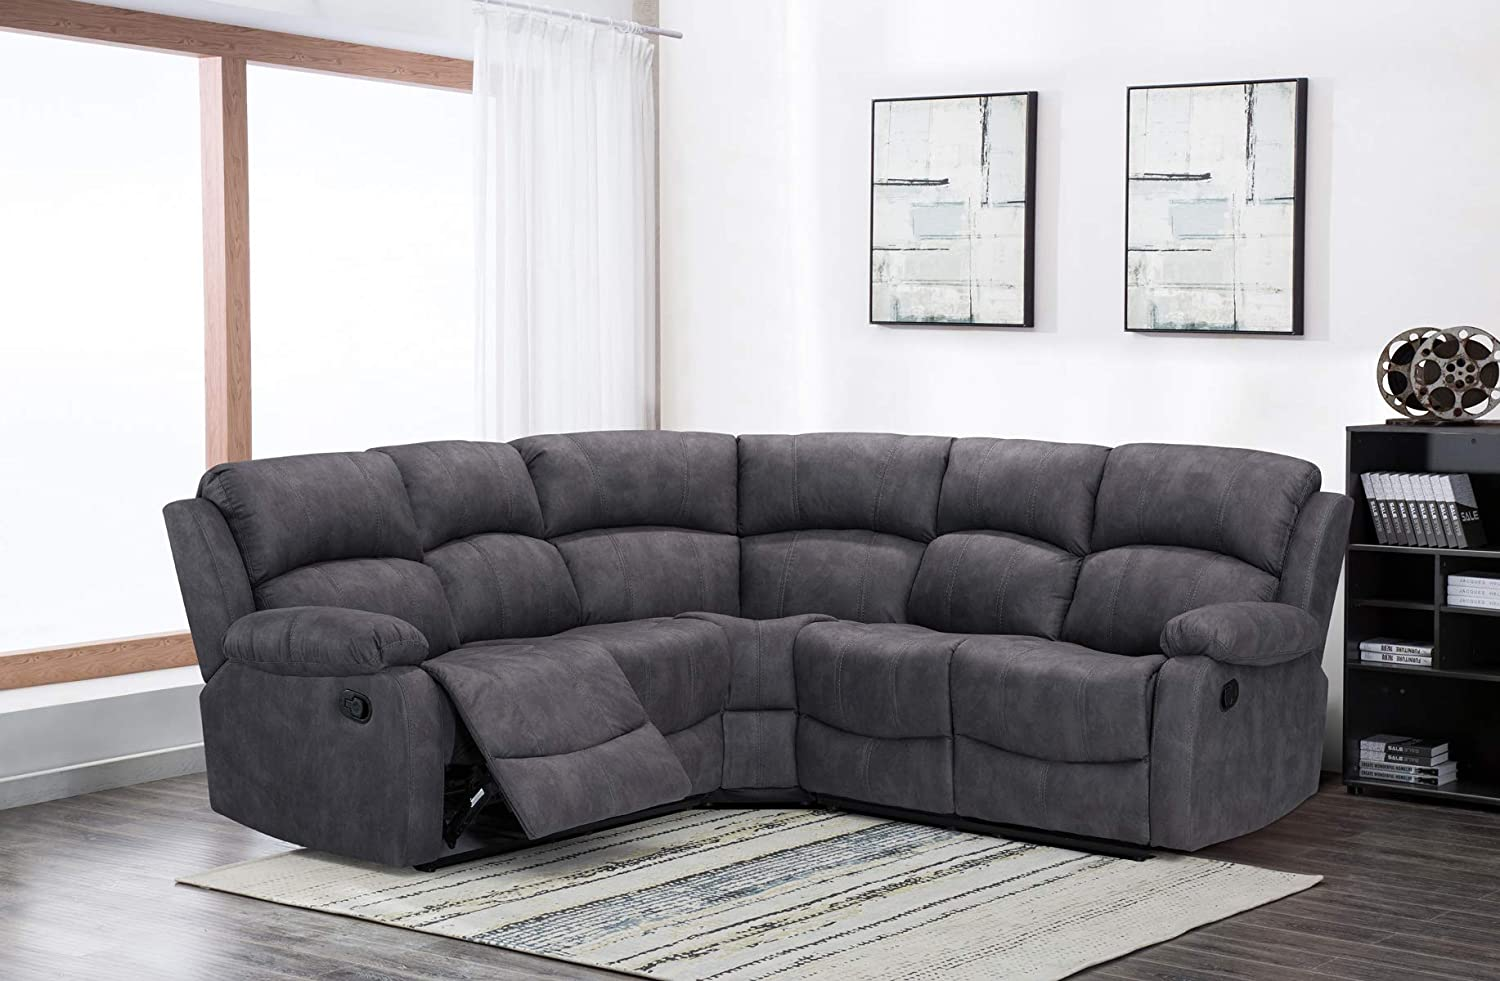 Admirable Details About Atara Large Grey 5 Seater Fabric Reclining Corner Sofa Manual Grey Recliner Sofa Dailytribune Chair Design For Home Dailytribuneorg